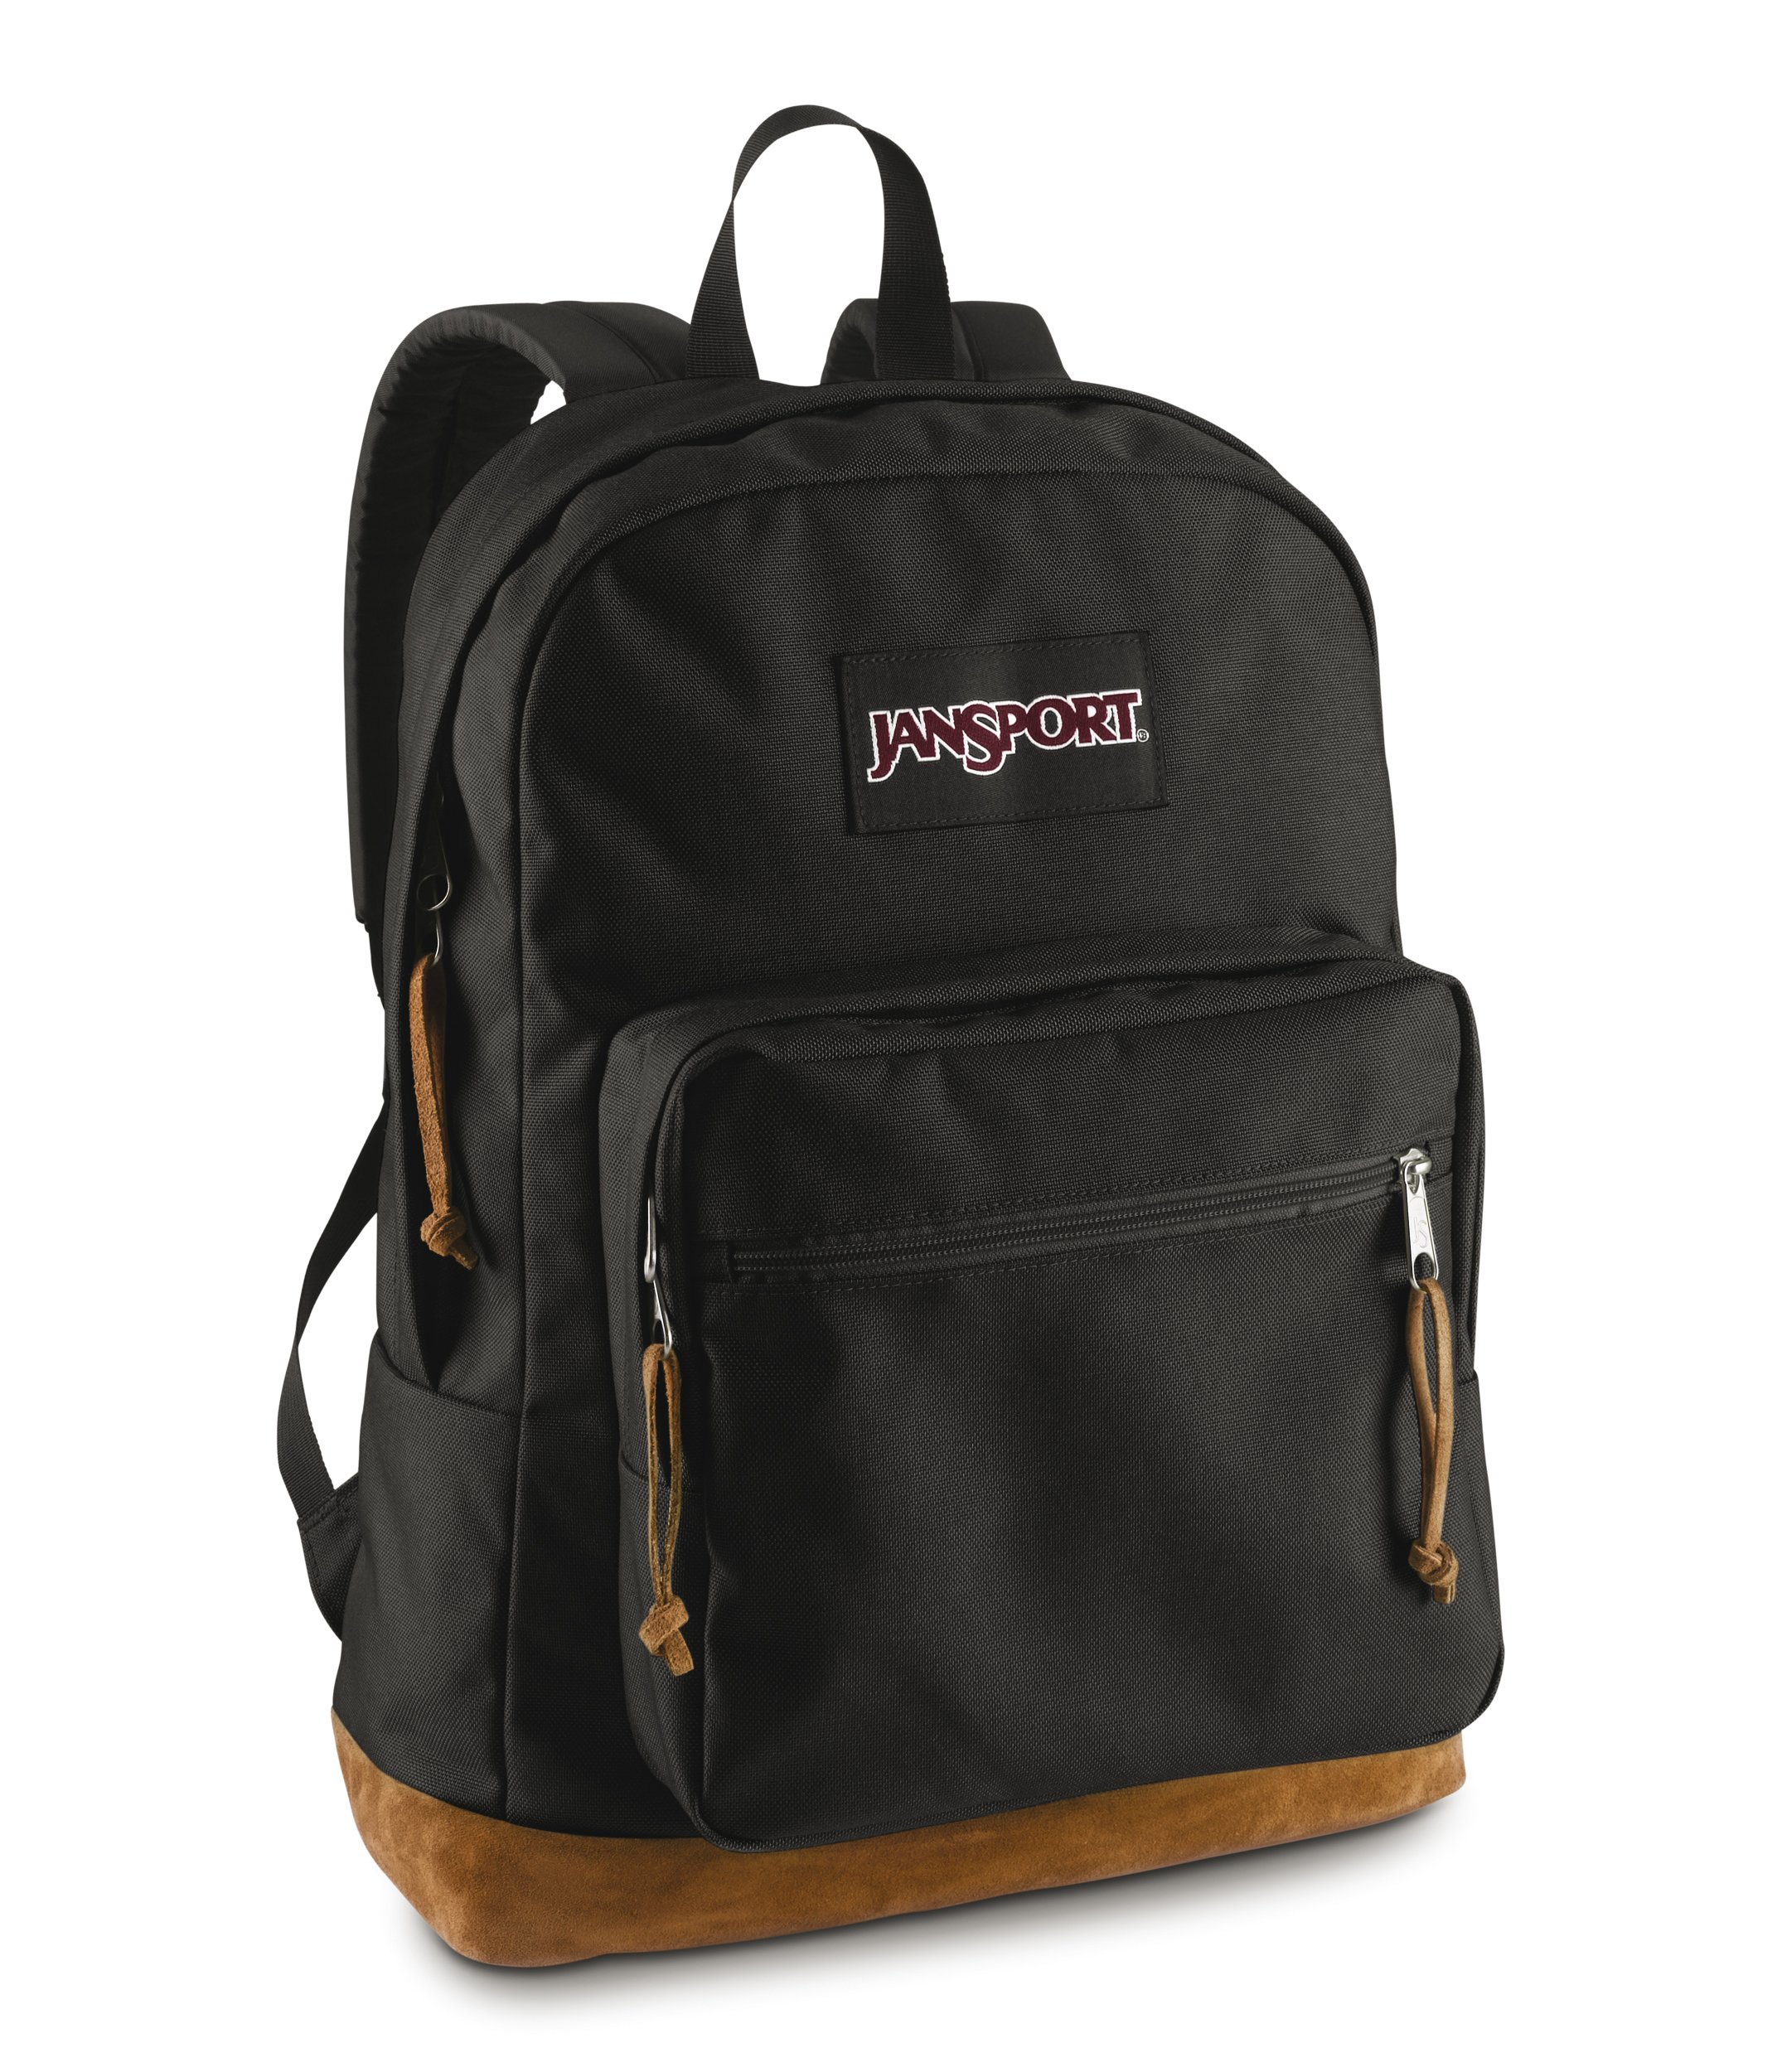 JanSport Right Pack, Black, One Size by JanSport